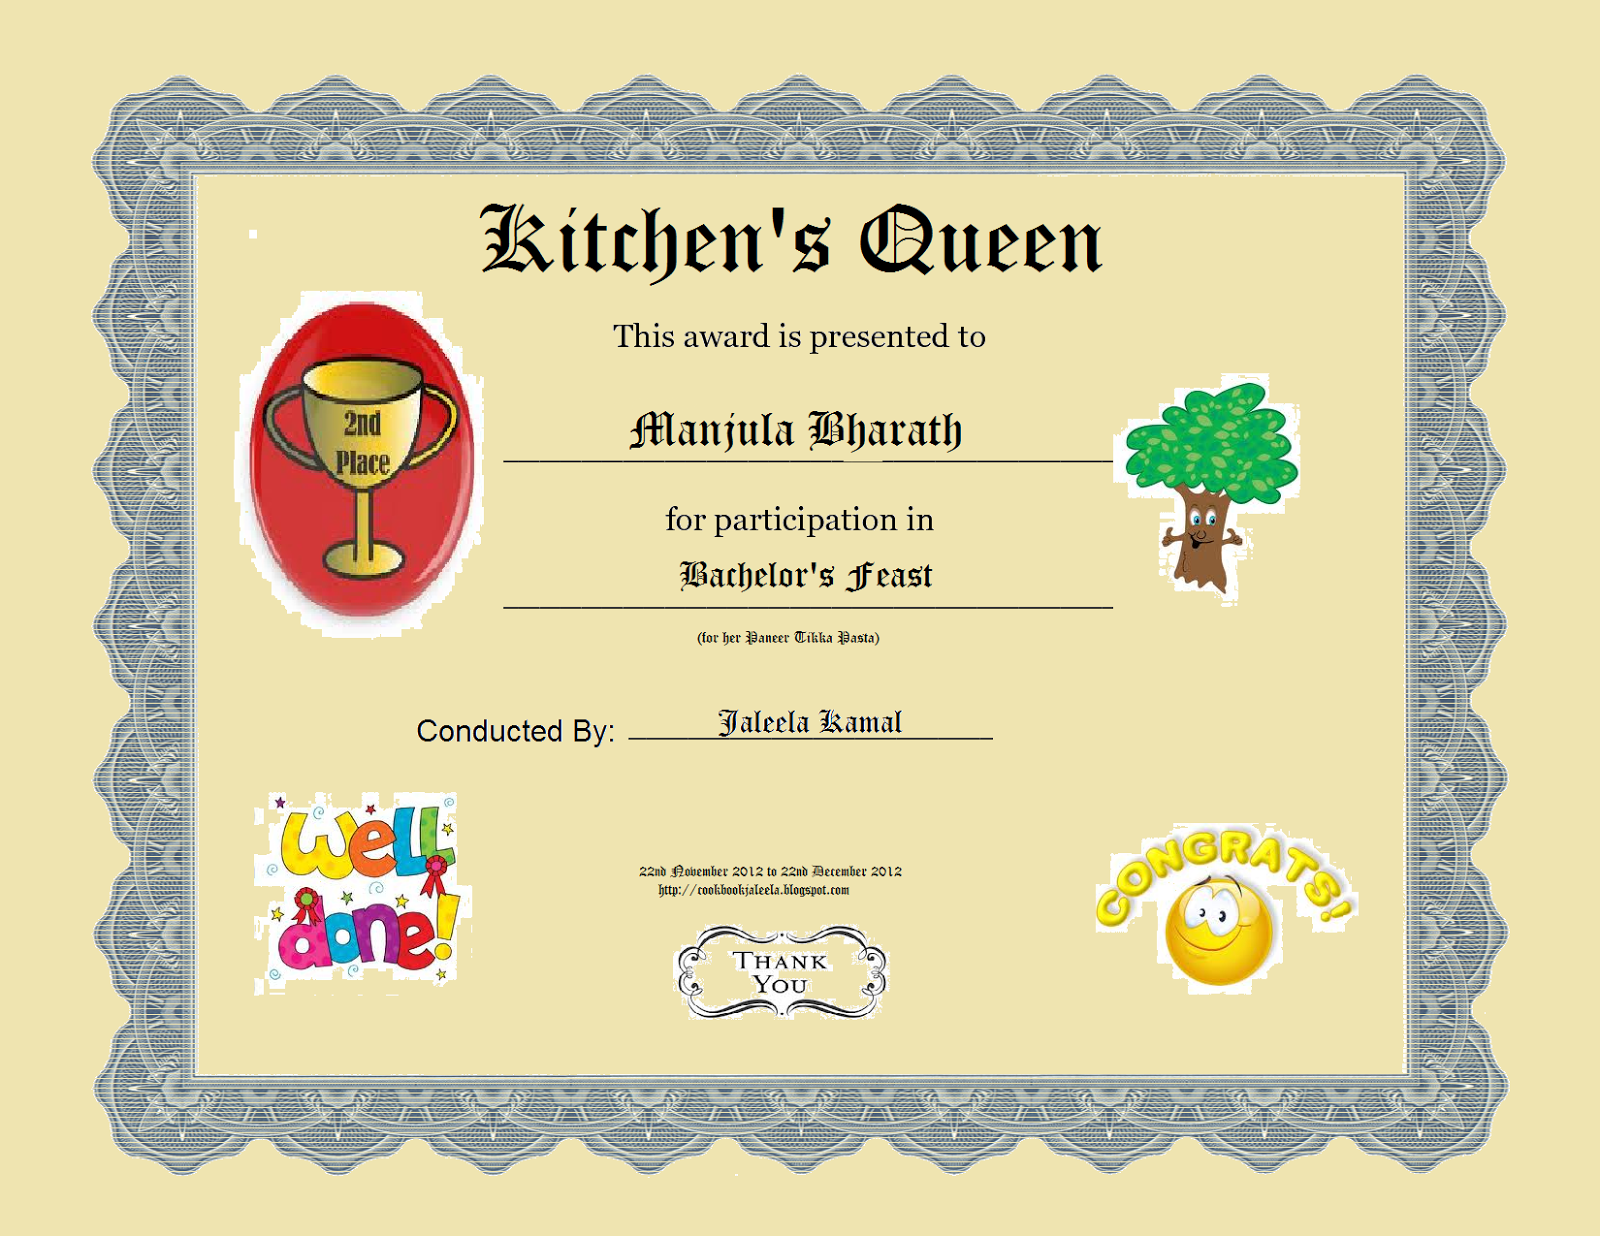 chili award certificate template - unwrapping my first giveaway award desi fiesta